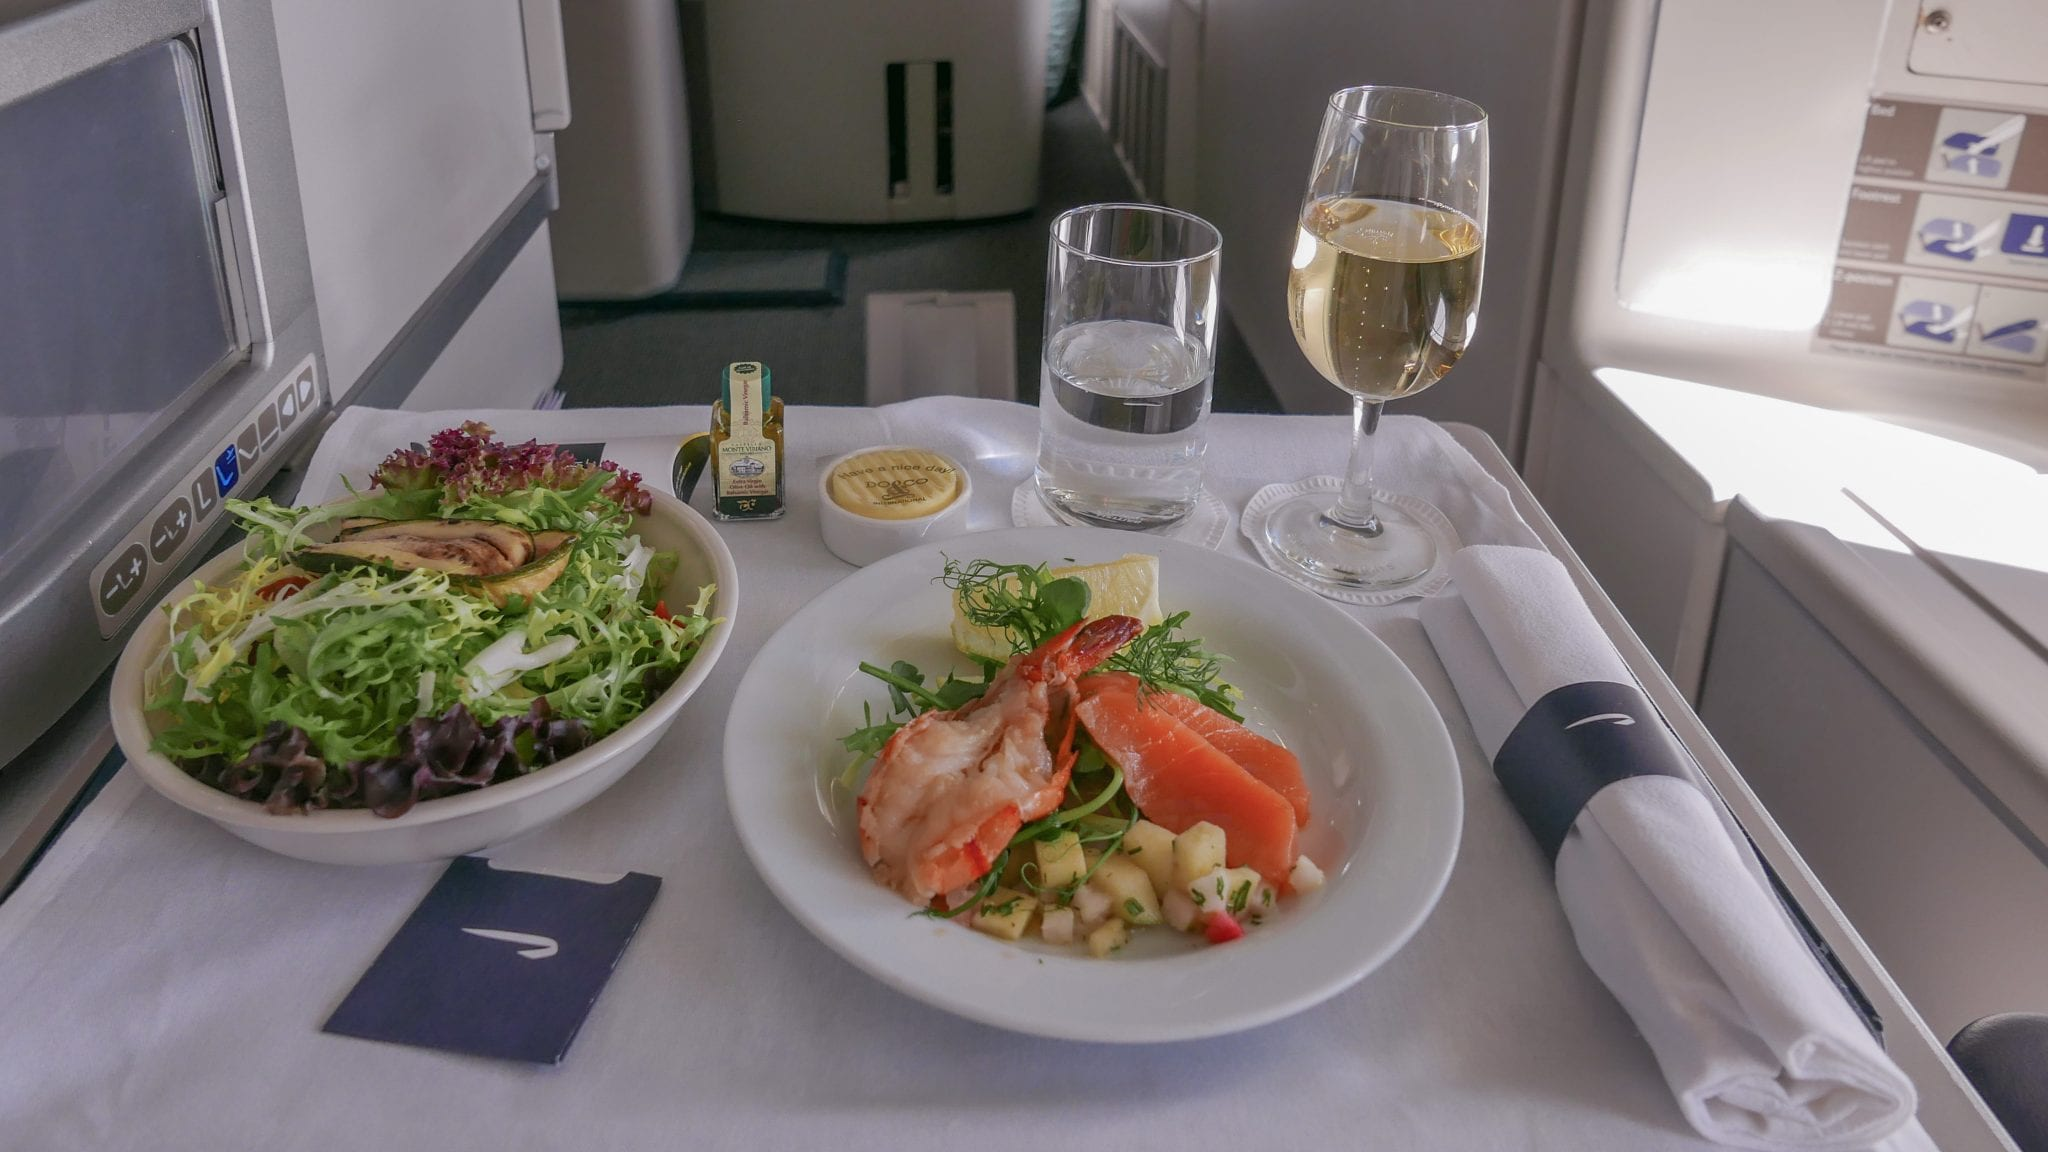 64A new catering BA 747 37 - REVIEW - British Airways : Club Suites Business Class - A350 - London (LHR) to Dubai (DXB) and back - [COVID-era]